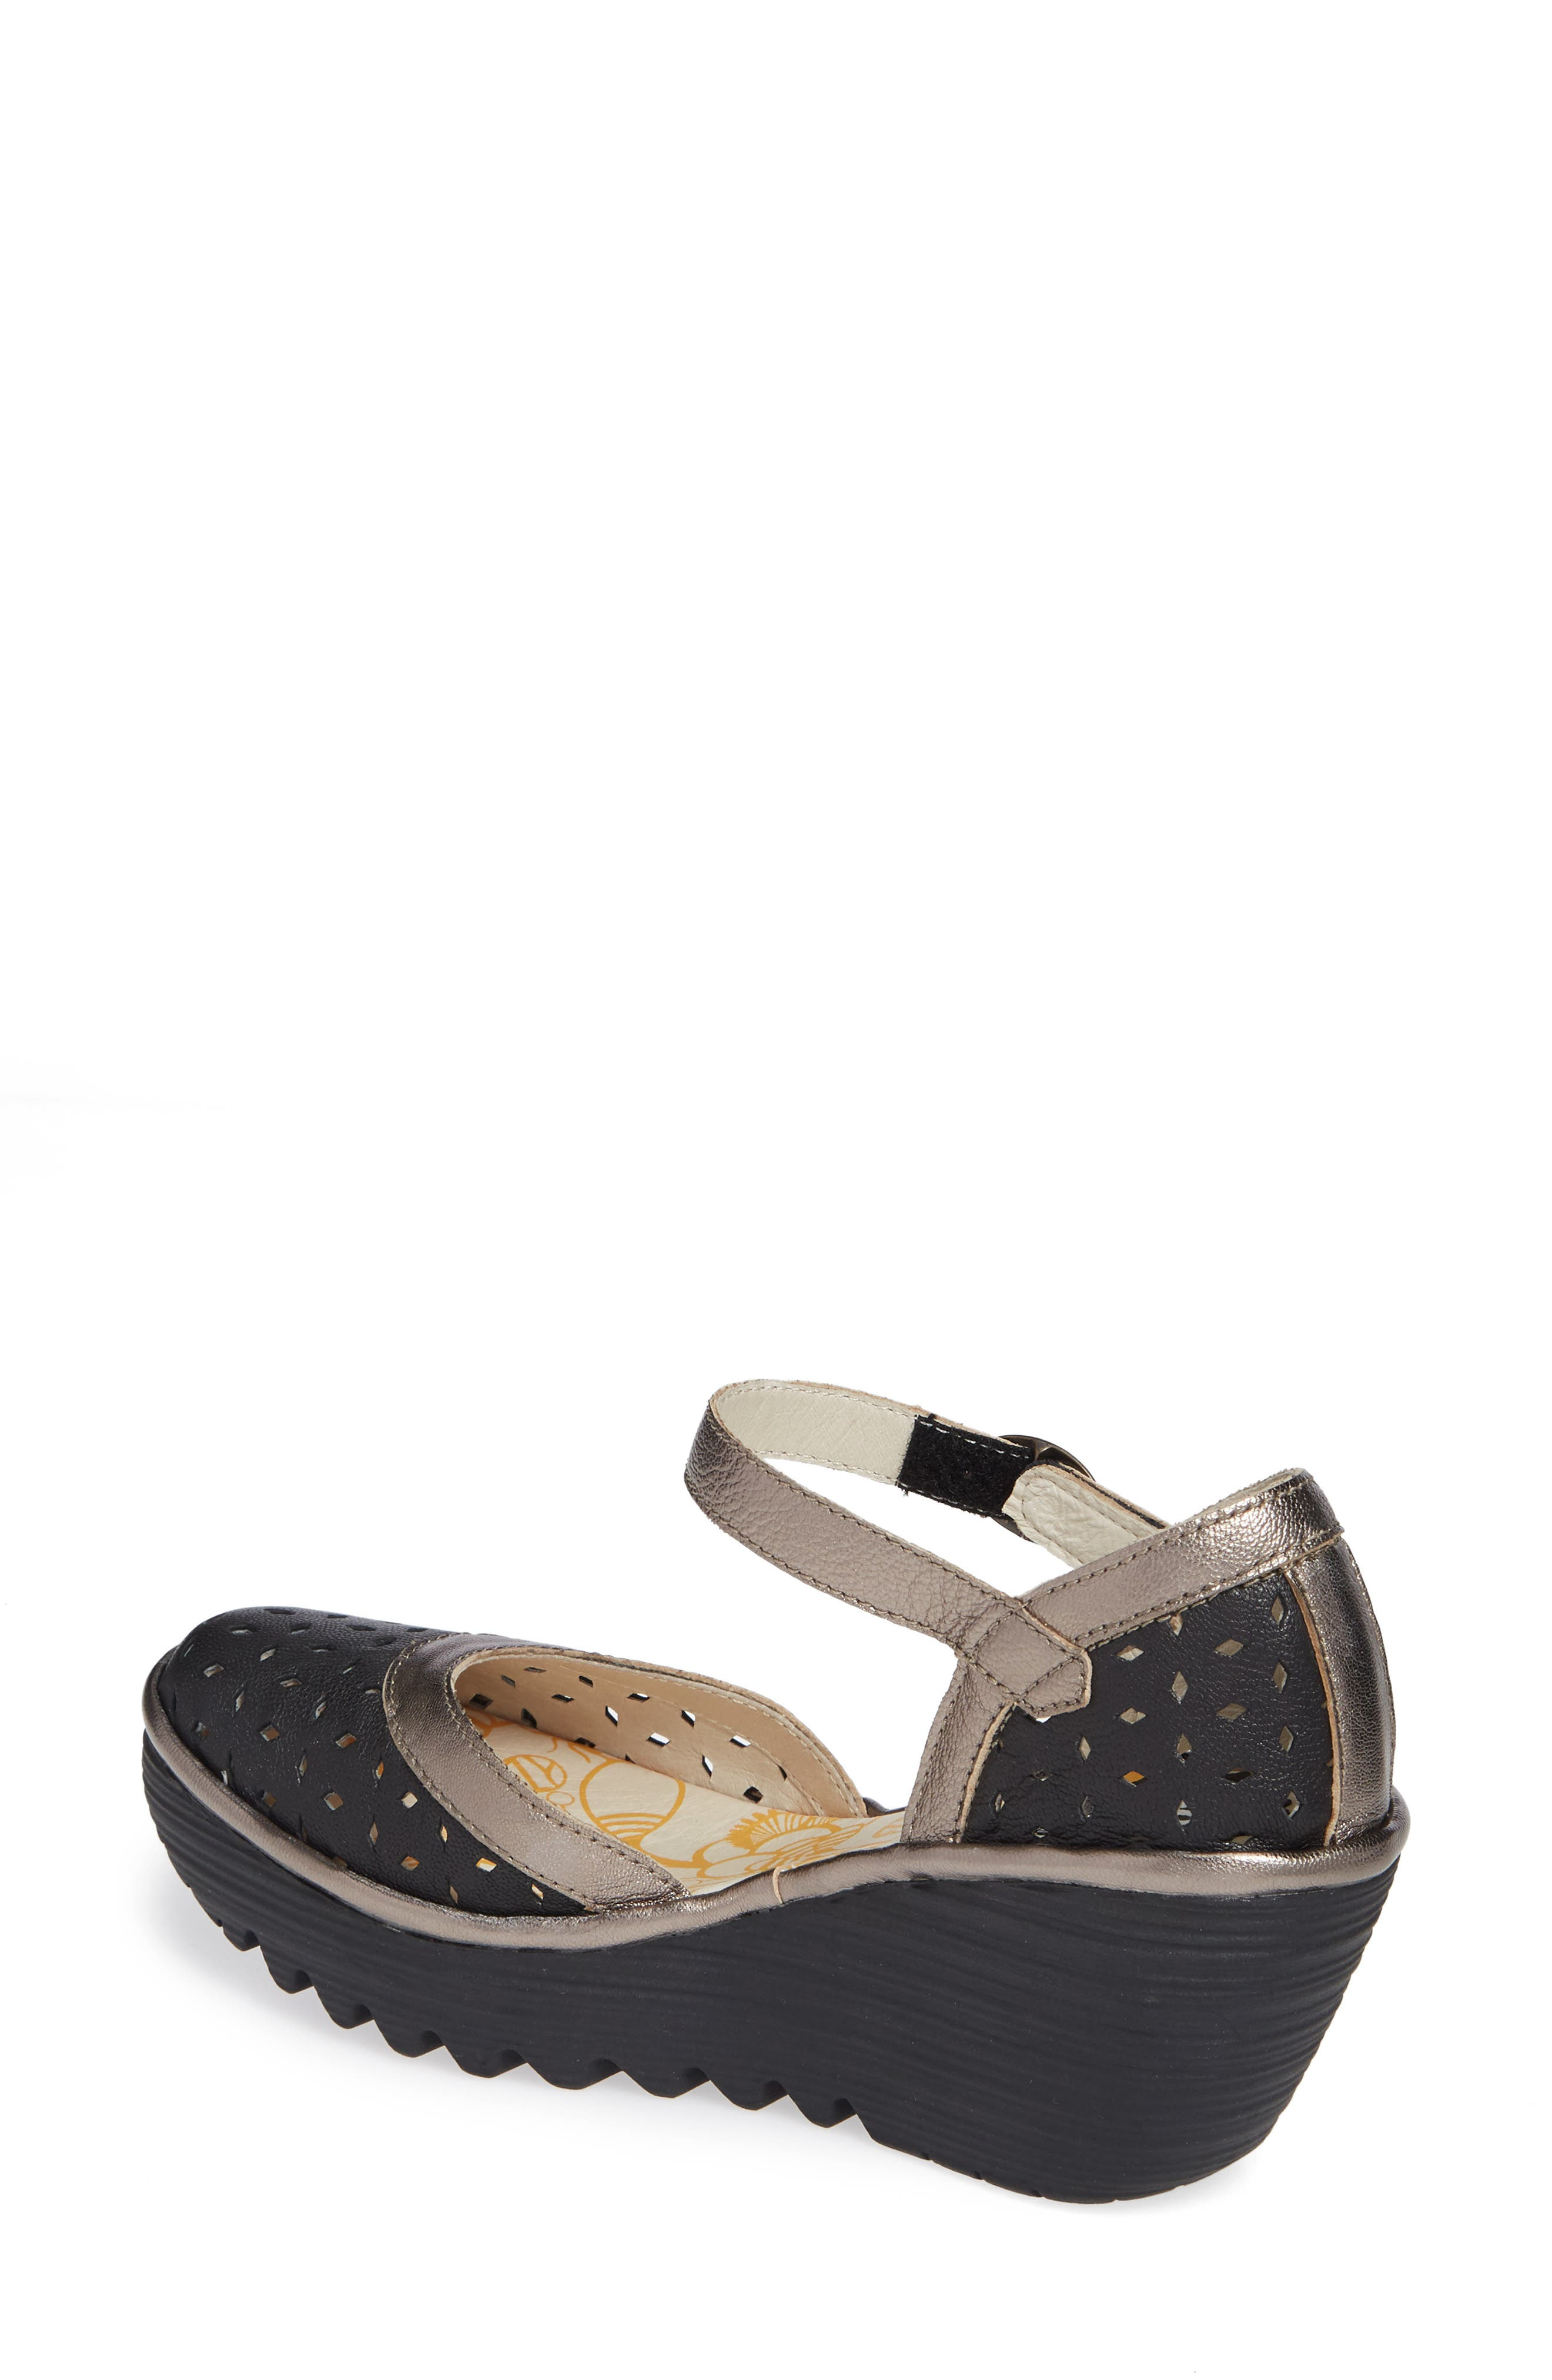 FLY LONDON,                             Yven Wedge,                             Alternate thumbnail 2, color,                             BLACK/ BRONZE LEATHER